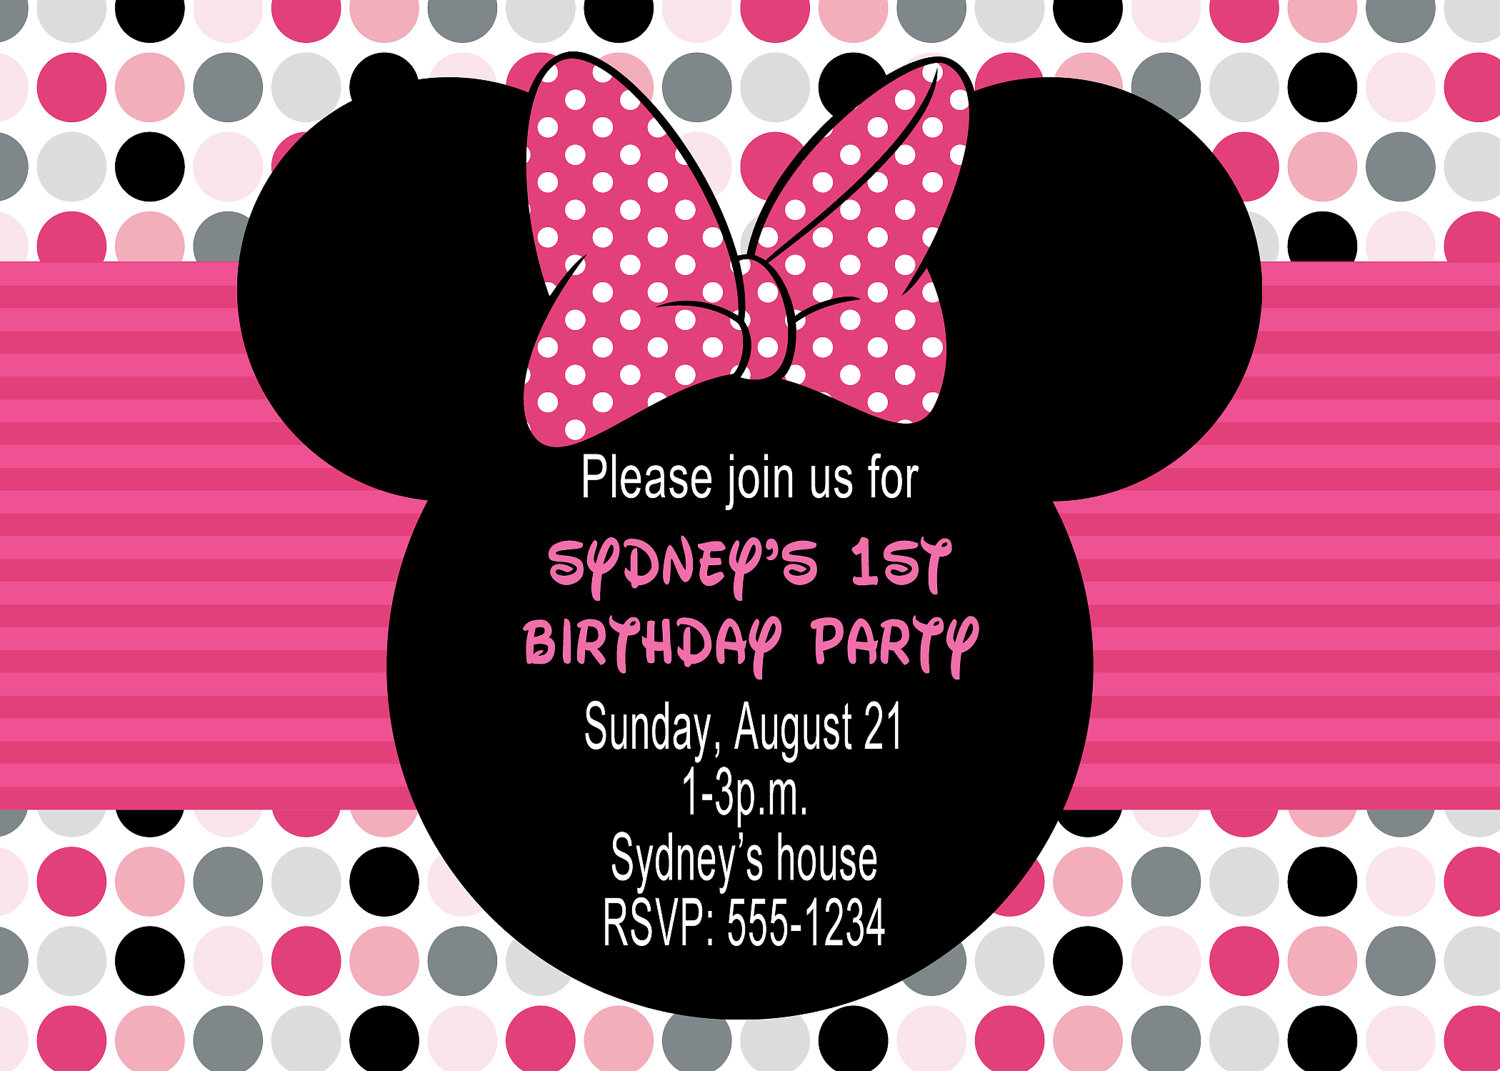 birthday invitation minnie mouse theme ; birthday-invitations-retro-style-minnie-mouse-custom-birthday-party-invitation-sweet-mouse-birthday-invitations